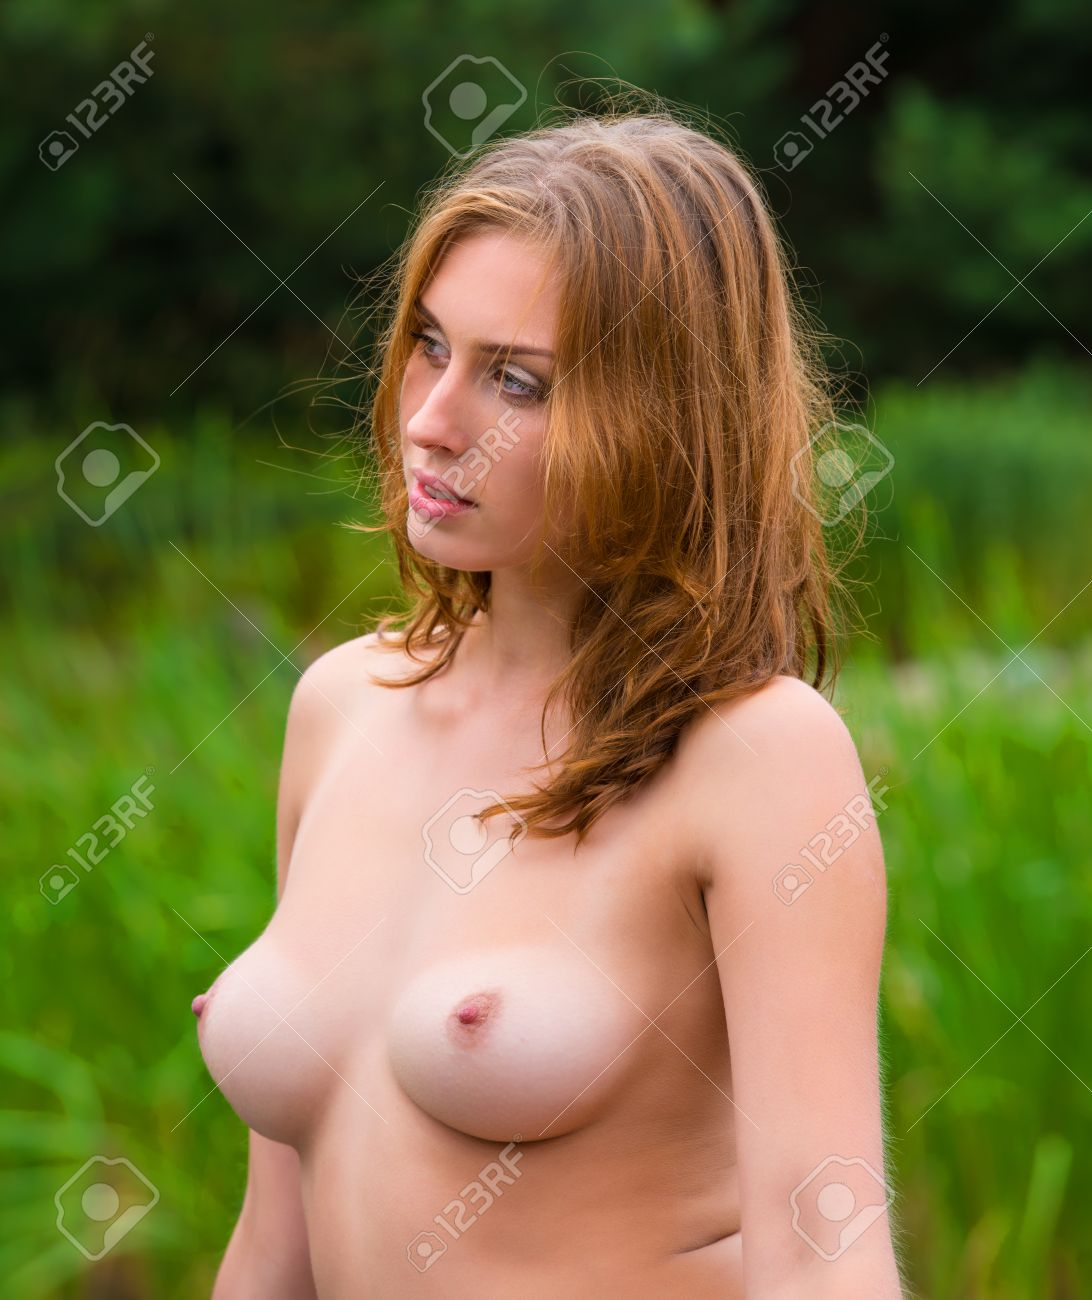 Naked women outdoors videos